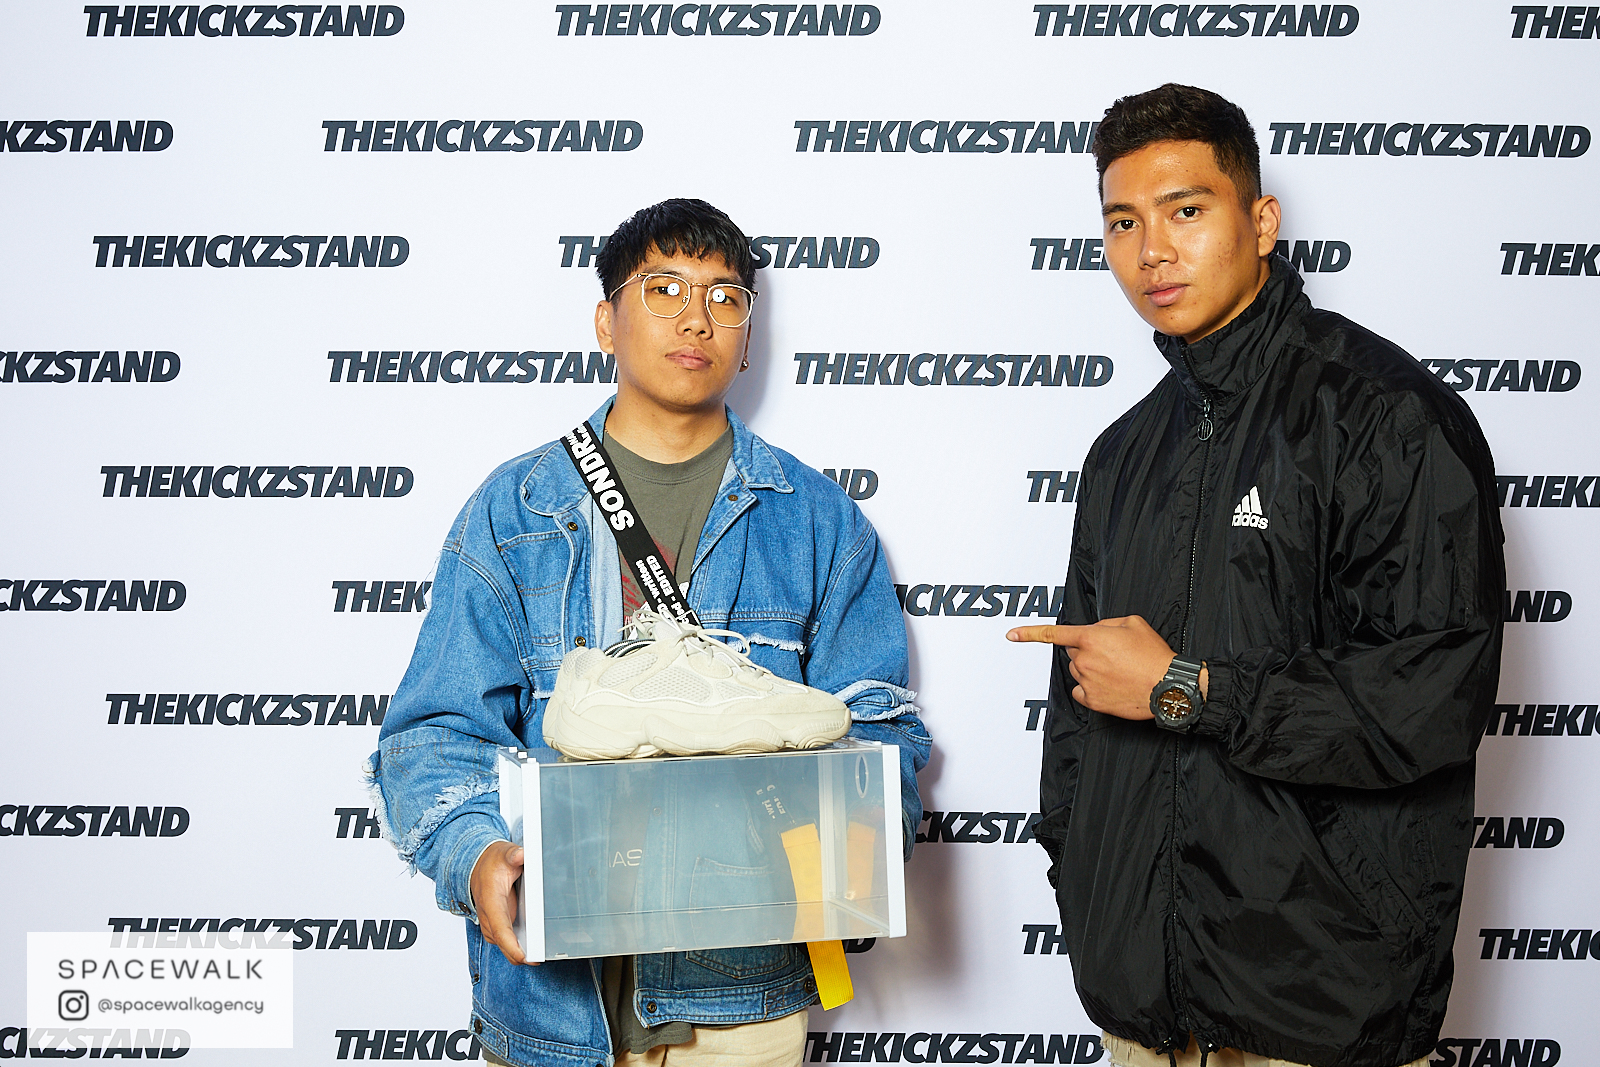 KICKZSTAND_BOOTH_035